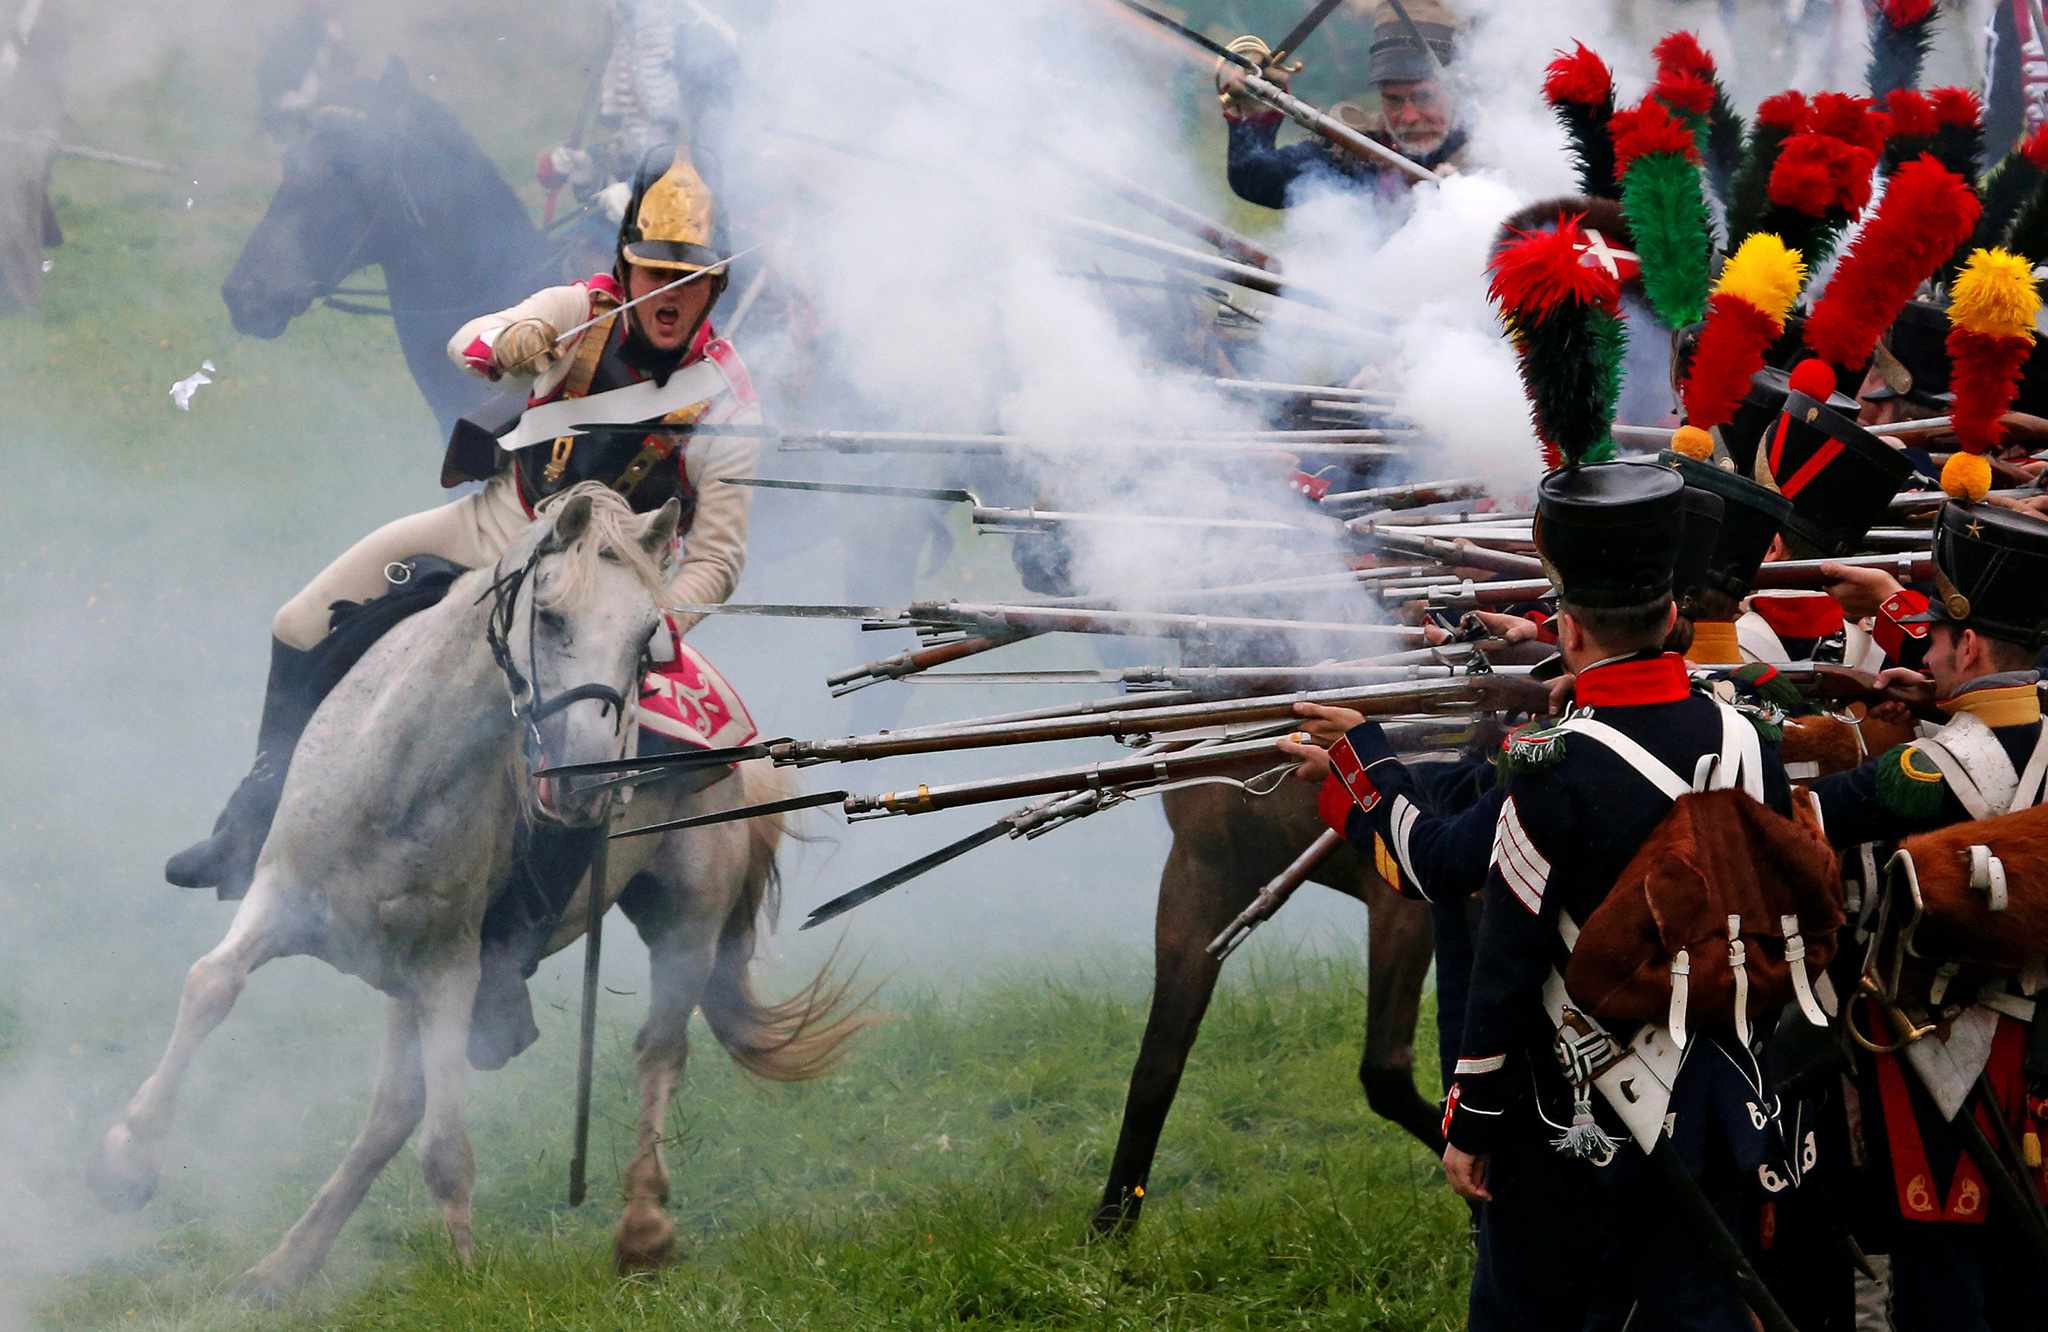 Participants reenact the 1812 Battle of Borodino between Russia and the invading French army during anniversary celebrations near Moscow, Russia